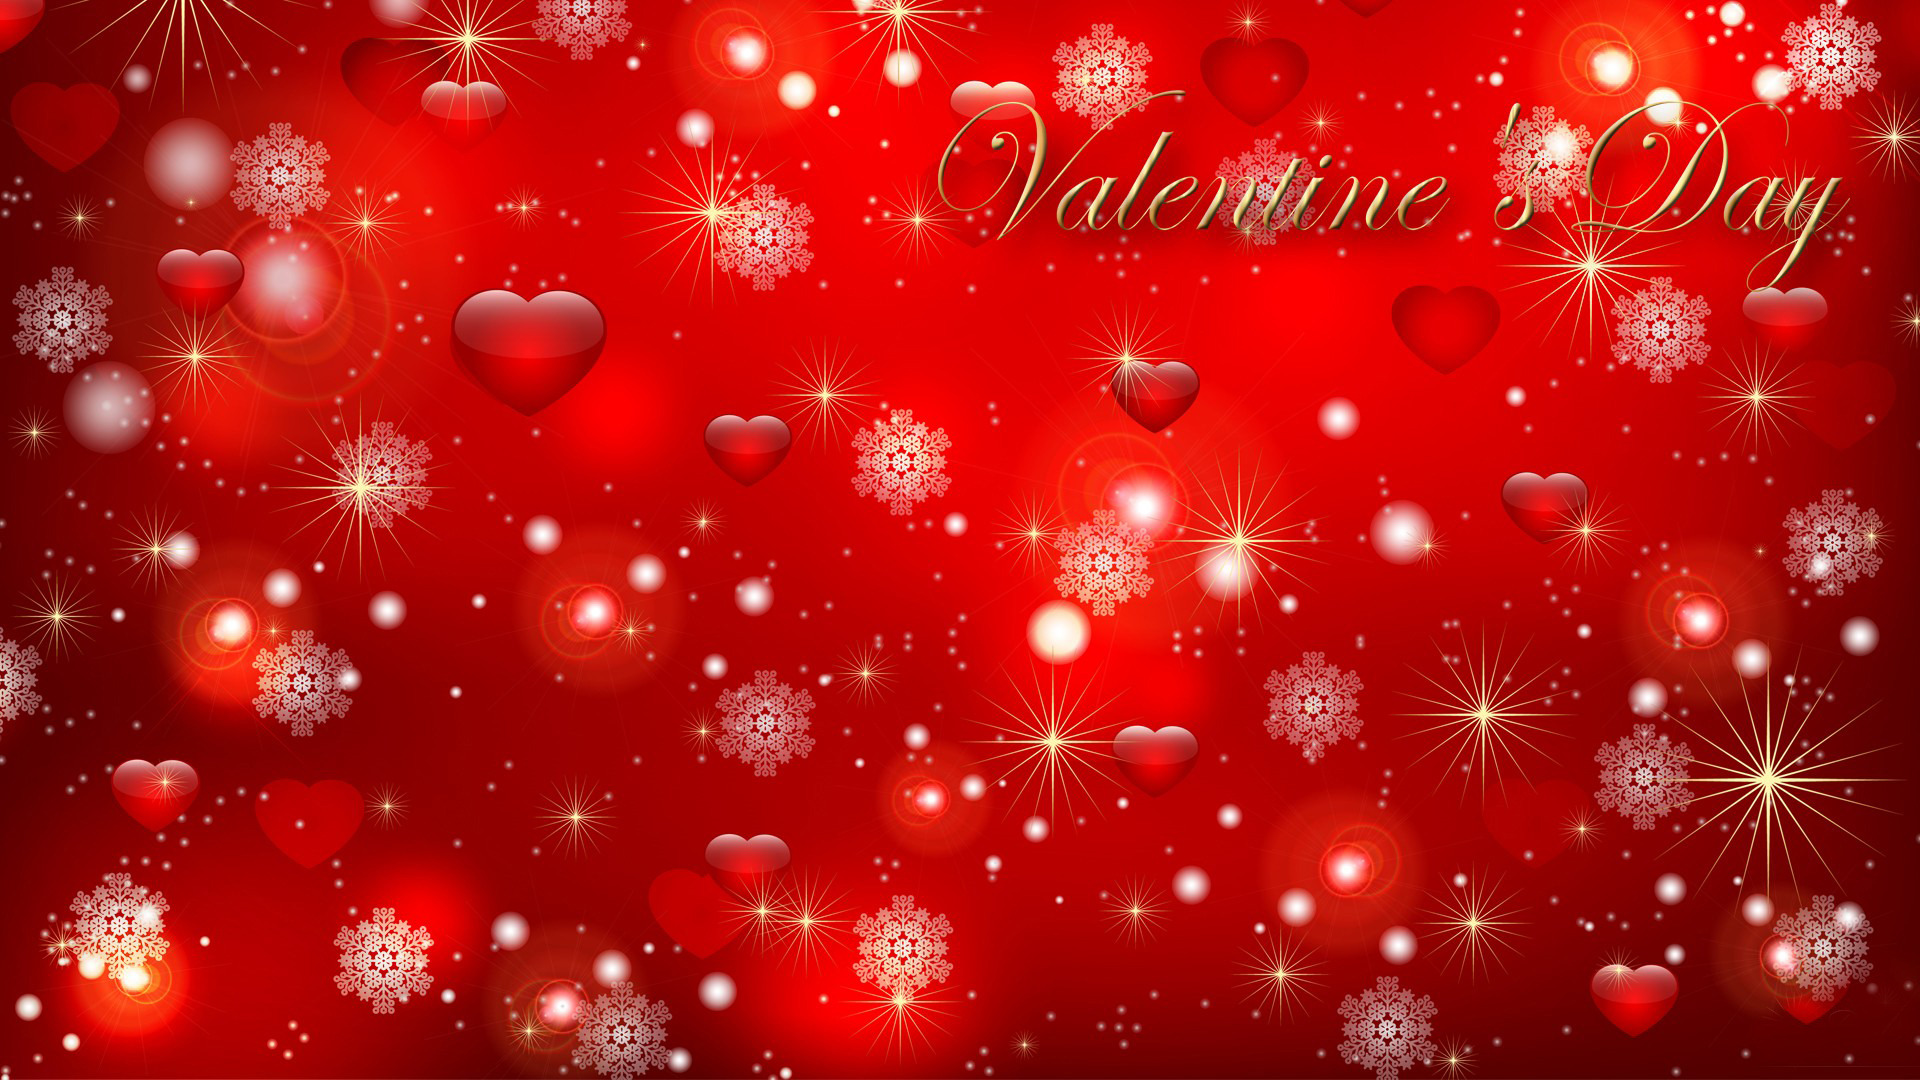 St Valentine Wallpapers Desktop Background D Valentine Wallpaper